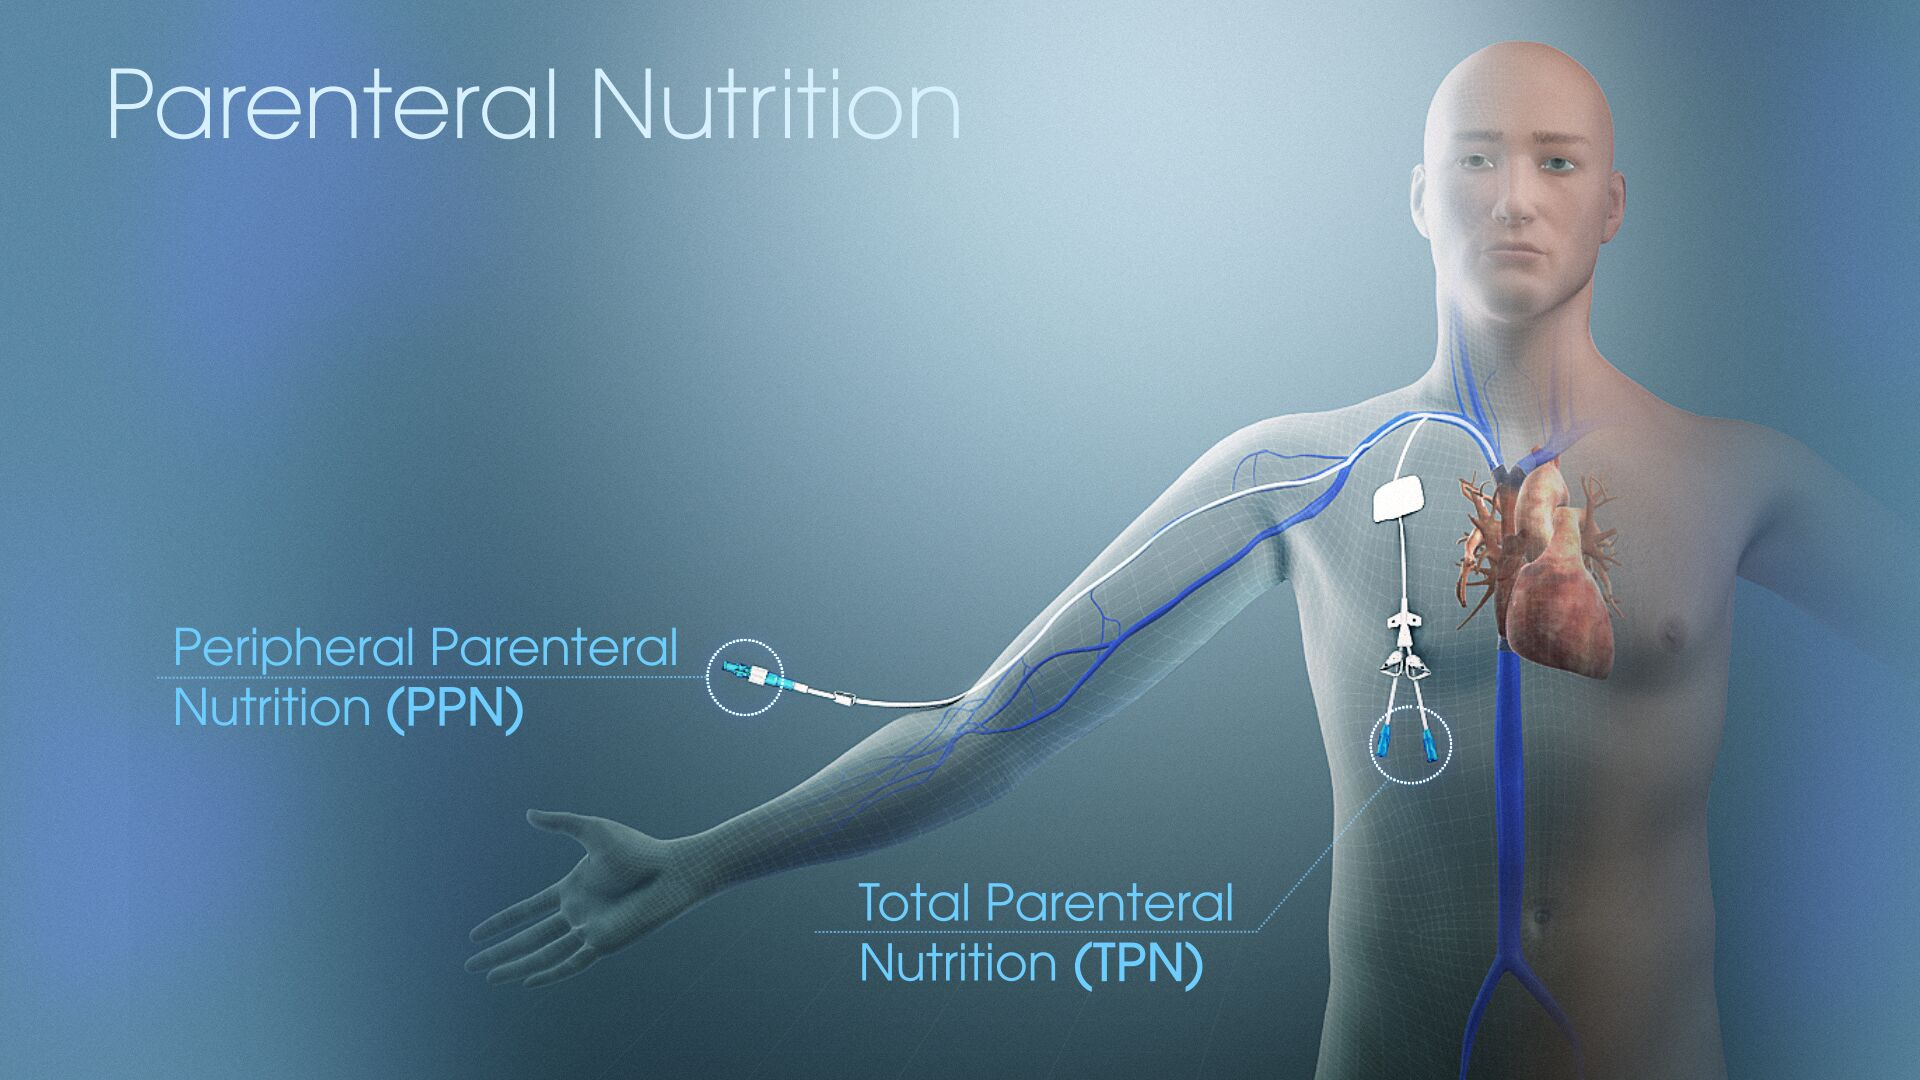 Parenteral Nutrition Market 2021 High Growth Forecast due to Rising Demand and Future Trends to 2031